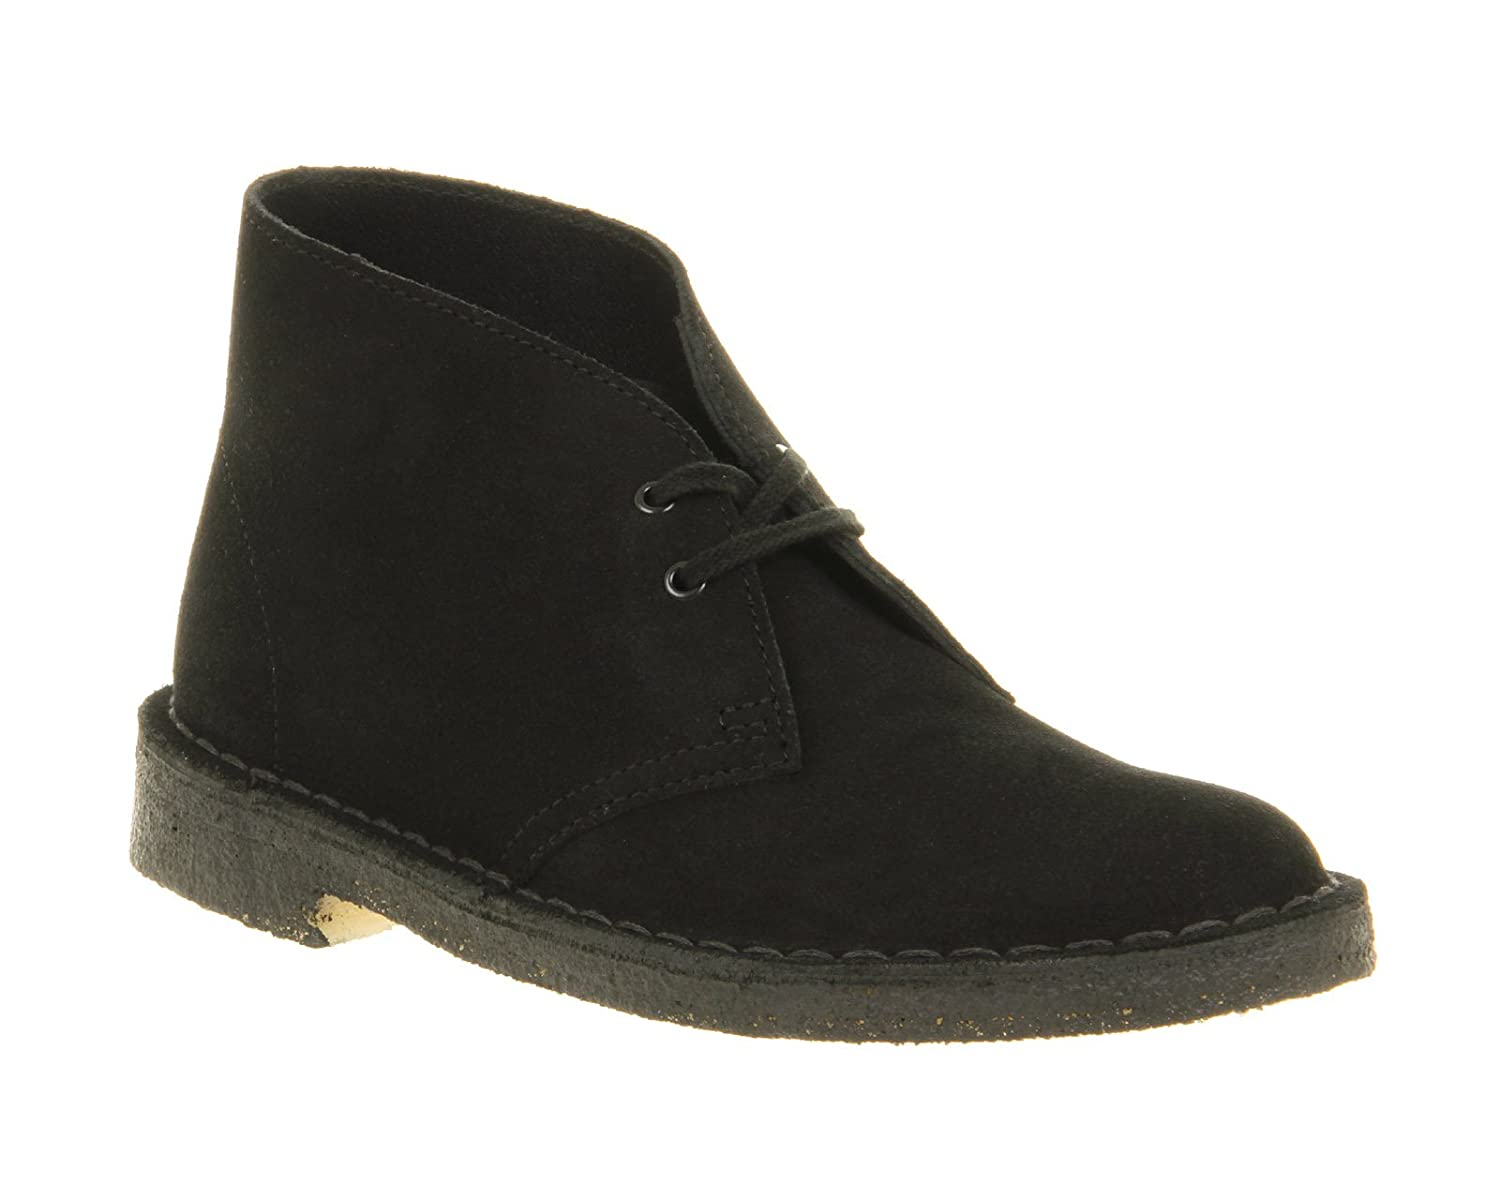 e27c82d3af6a4 Clarks Originals Desert Boot Black Suede - 8 UK  Amazon.co.uk  Shoes   Bags